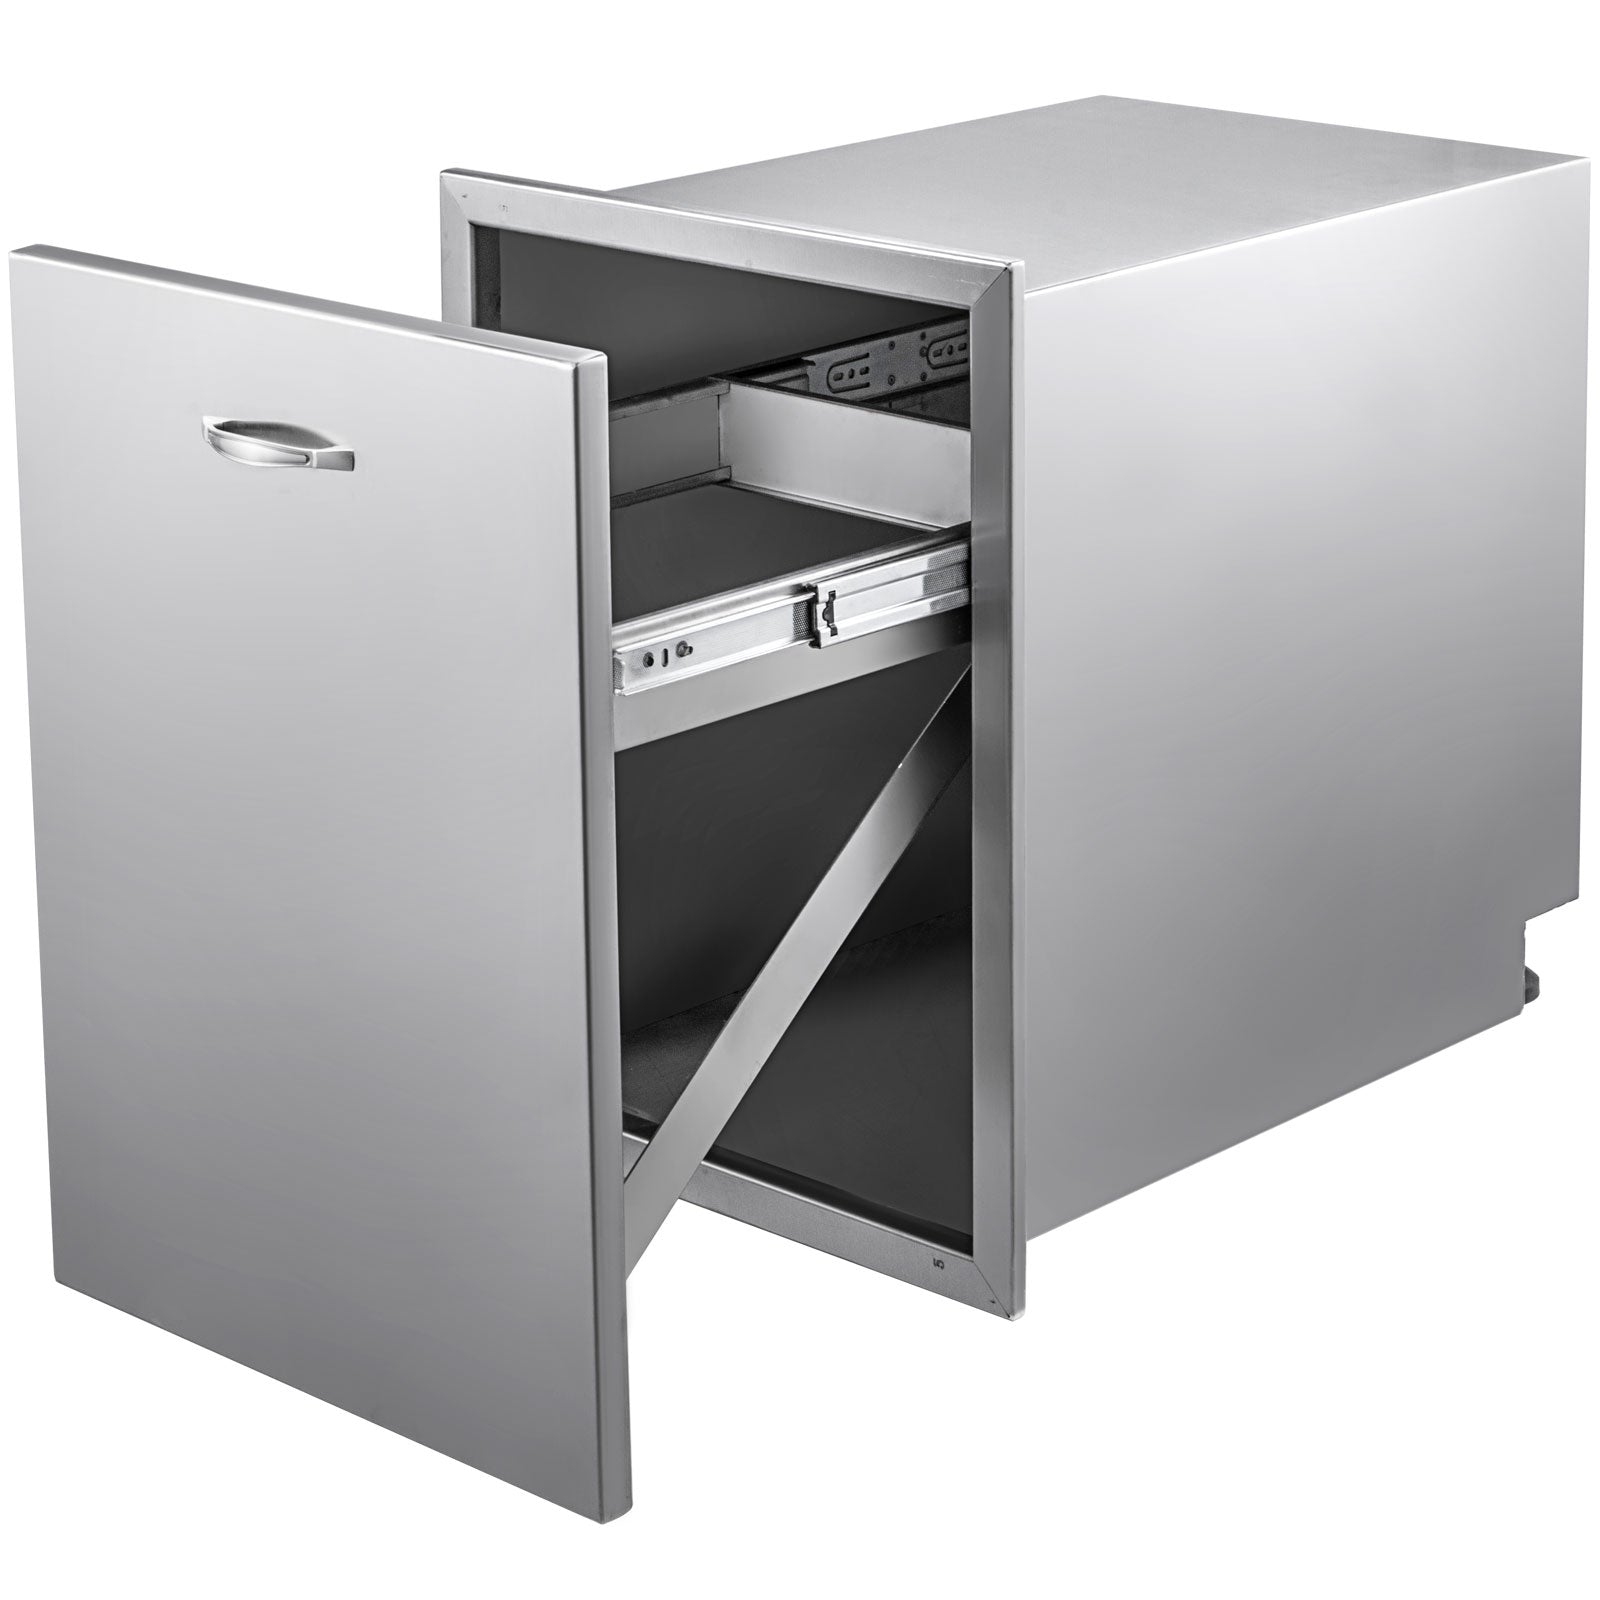 Bbq Island / Outdoor Kitchen Stainless Steel Narrow Trash Drawer